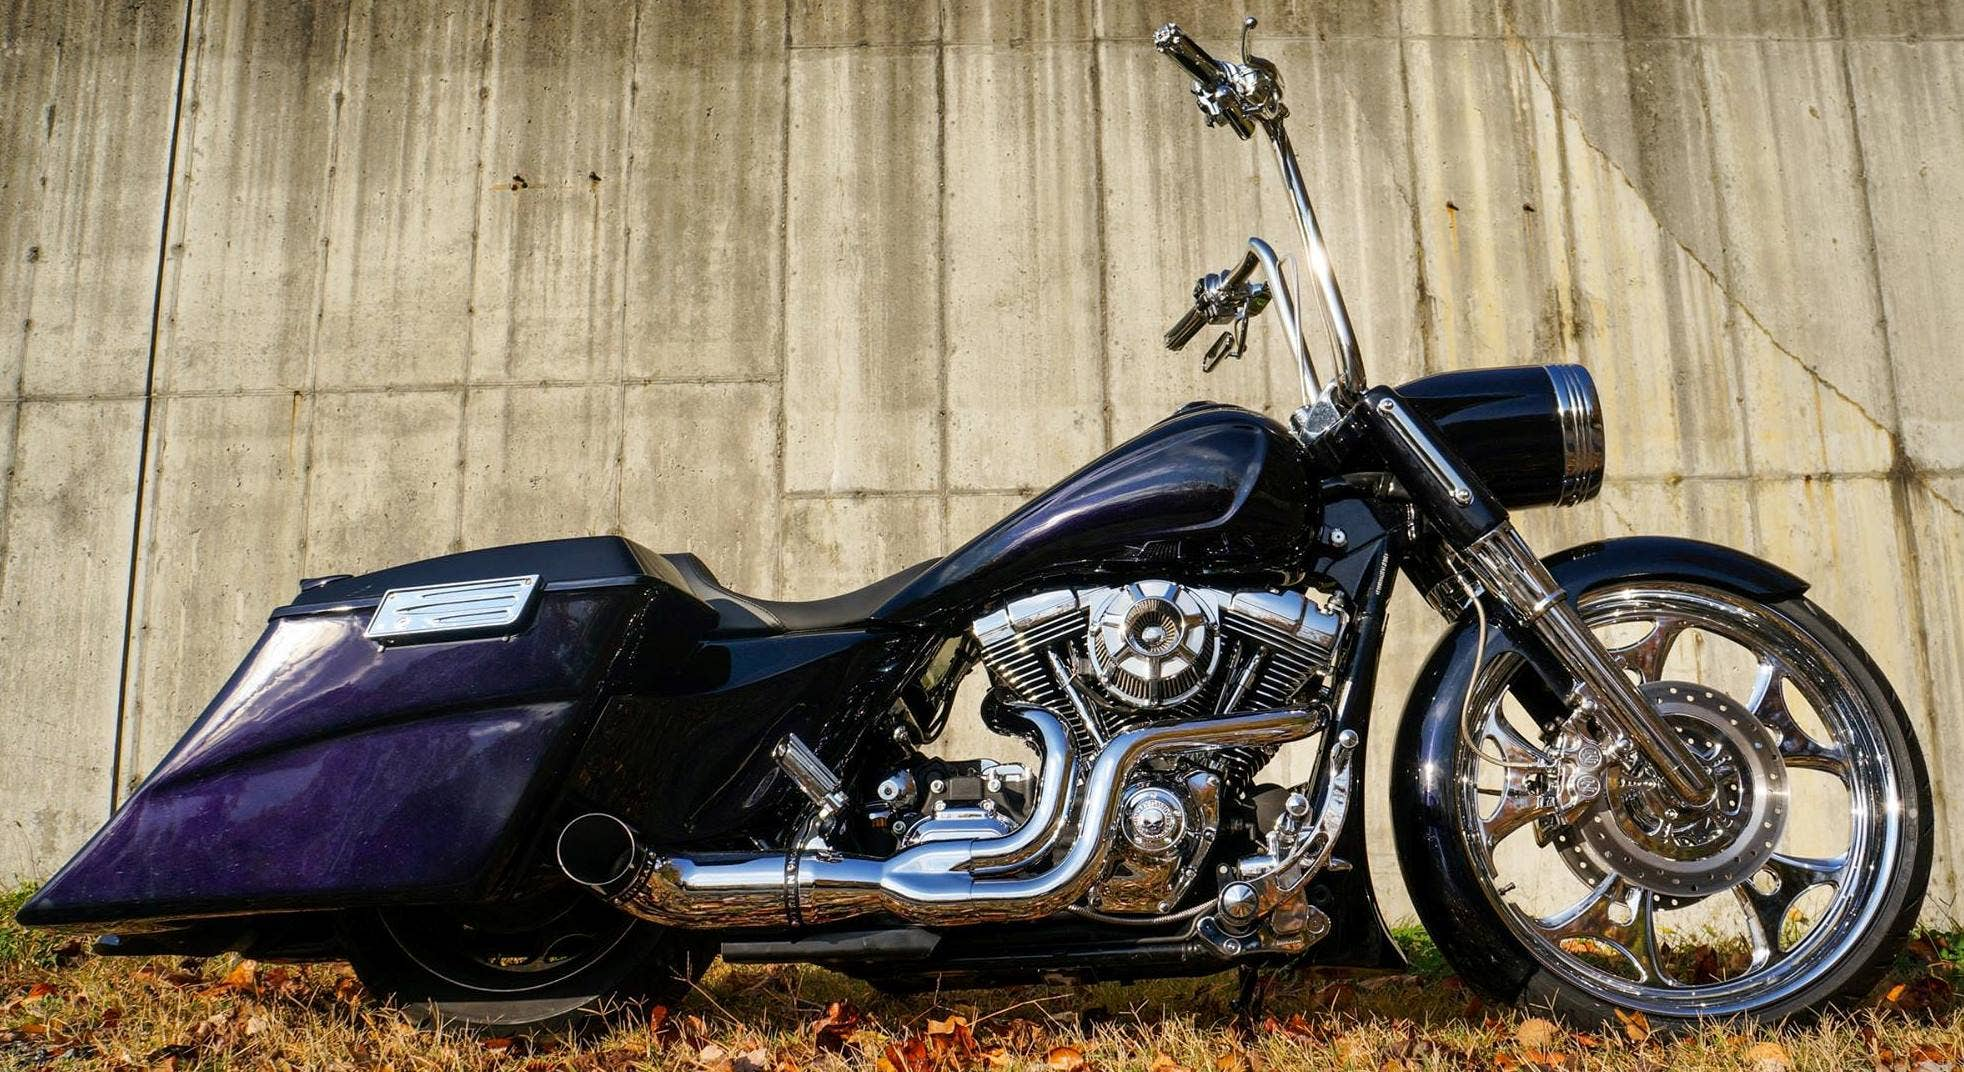 2009 Harley Road King Custom Build